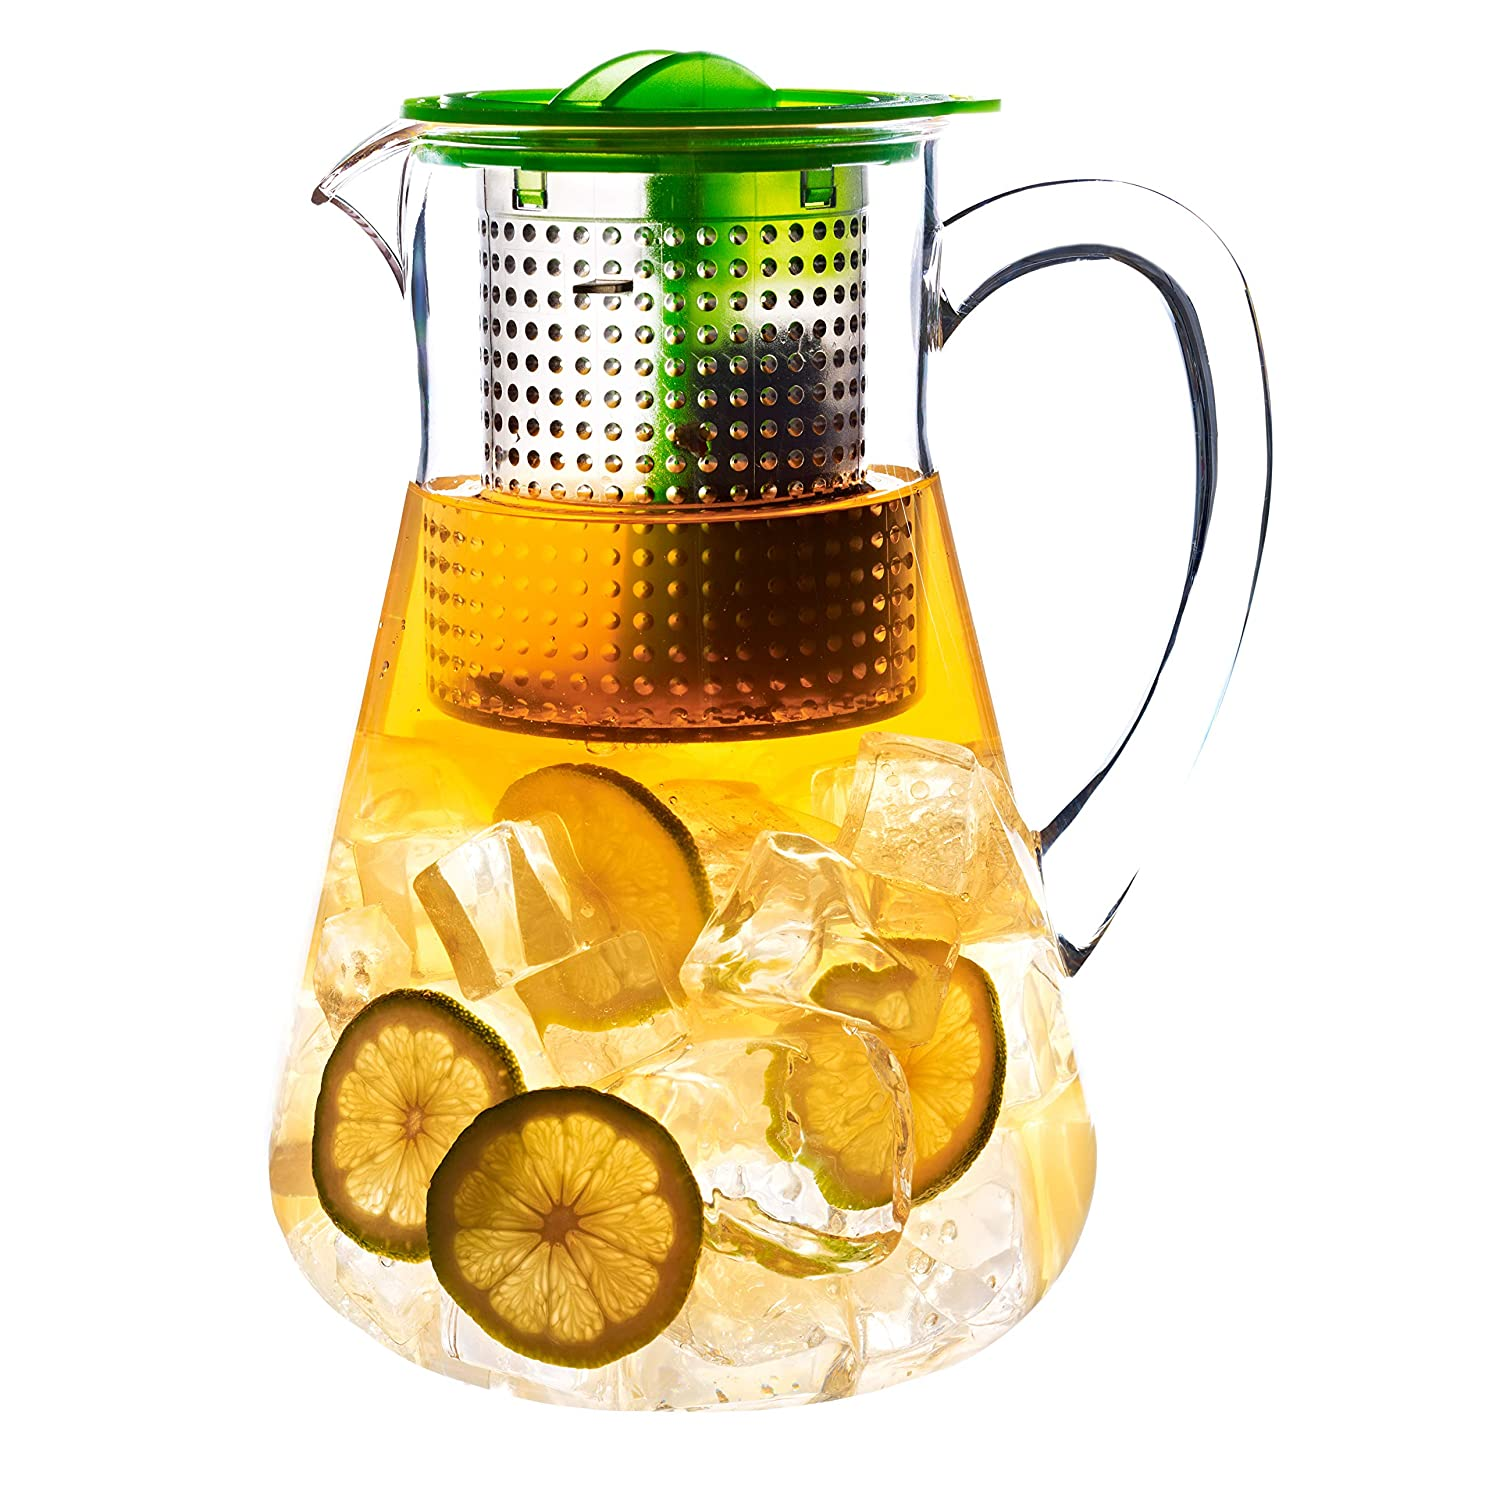 Finum Hot or Cold Loose-Leaf Iced Tea Control Pitcher, 1.8 Liters (61 Ounce), Apple Green